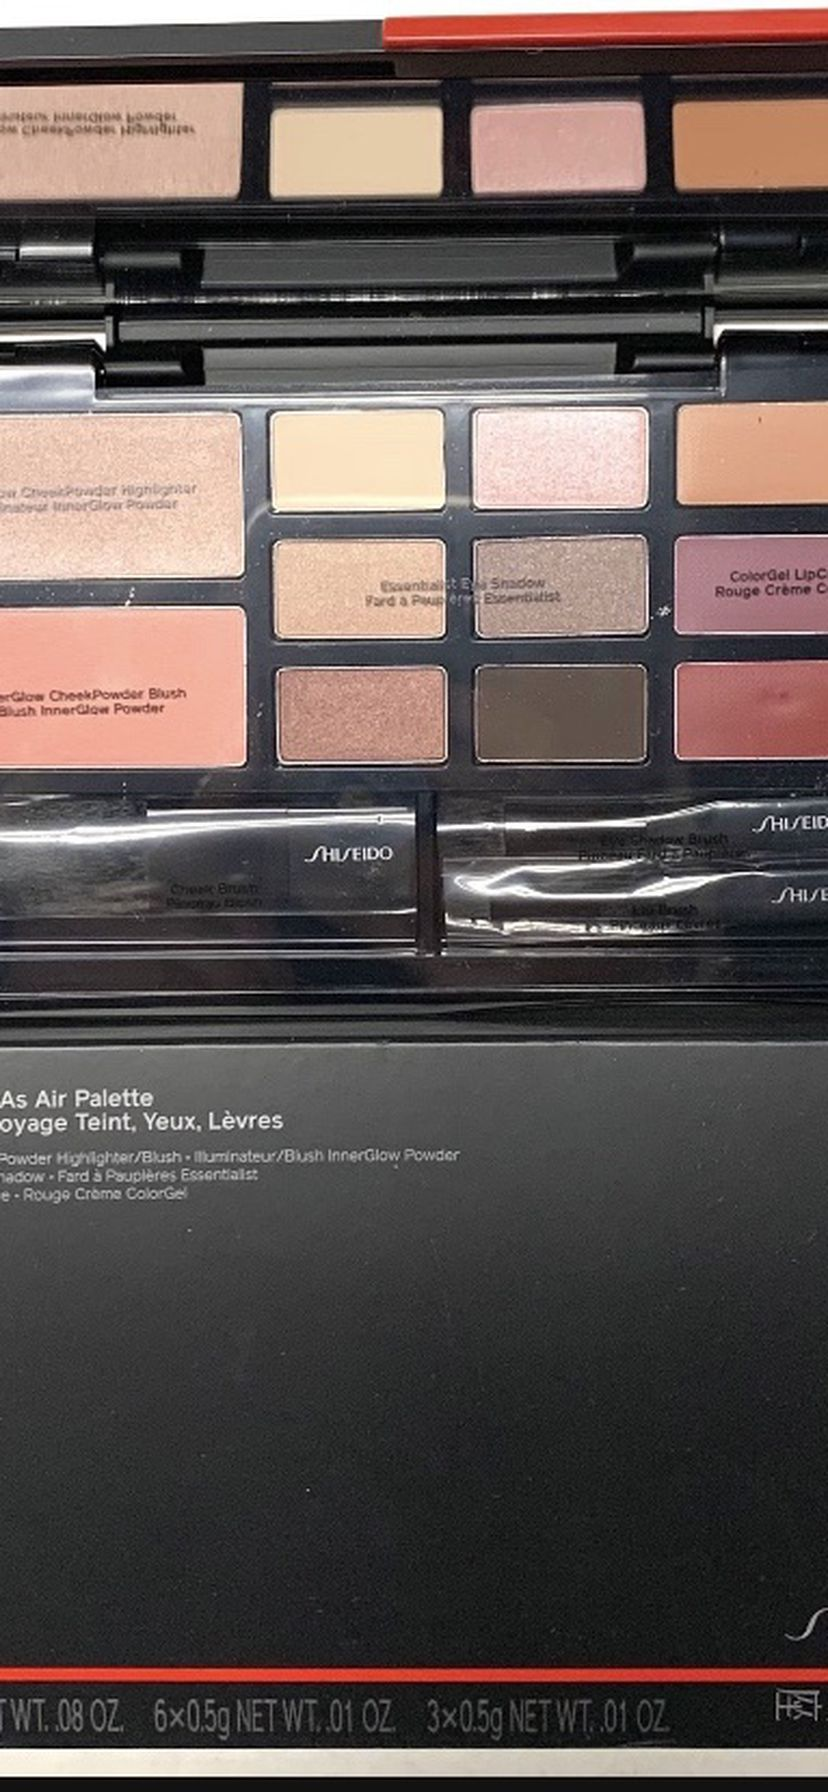 Shiseido Light As Air Eye, Cheek & Lip Palette NEW serious inquires only please Low offers will be ignored Pick up location in the city of Pico Riv